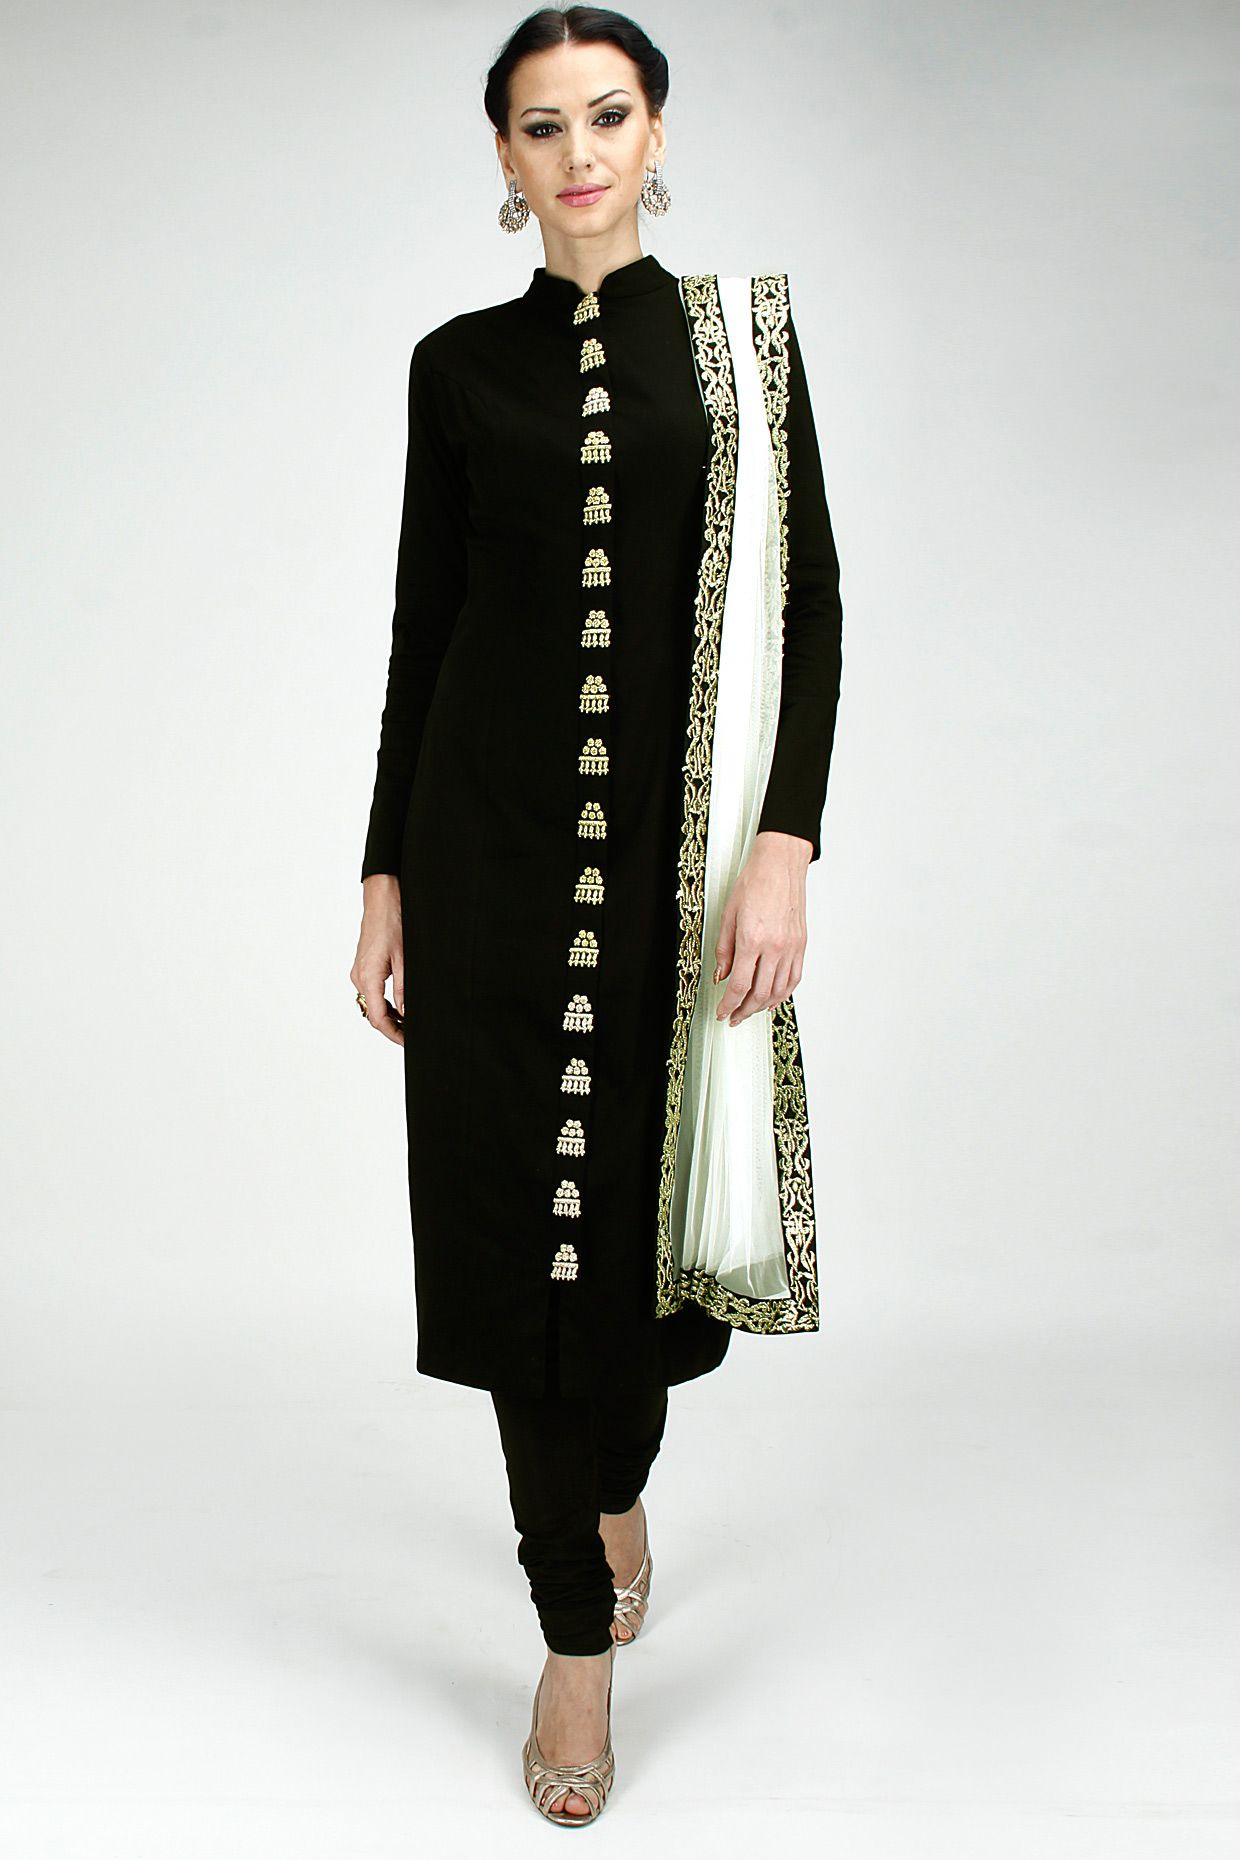 19dfee470d Black zardosi embroidered straight kurta set available only at Pernia's  Pop-Up Shop. Indian